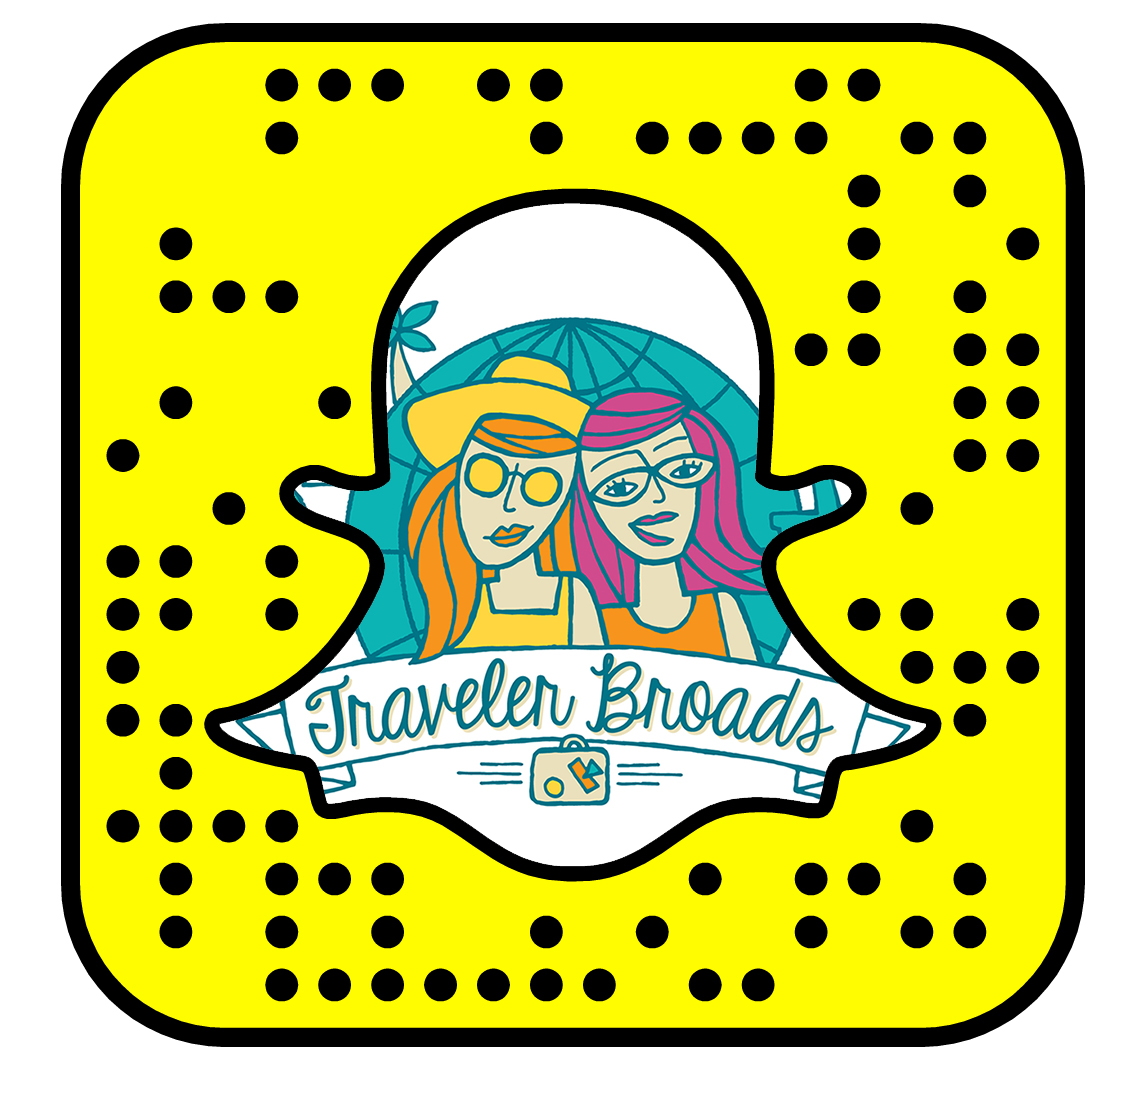 http://www.travelerbroads.com/wp-content/uploads/2016/09/TBsnapcode.jpg on Snapchat